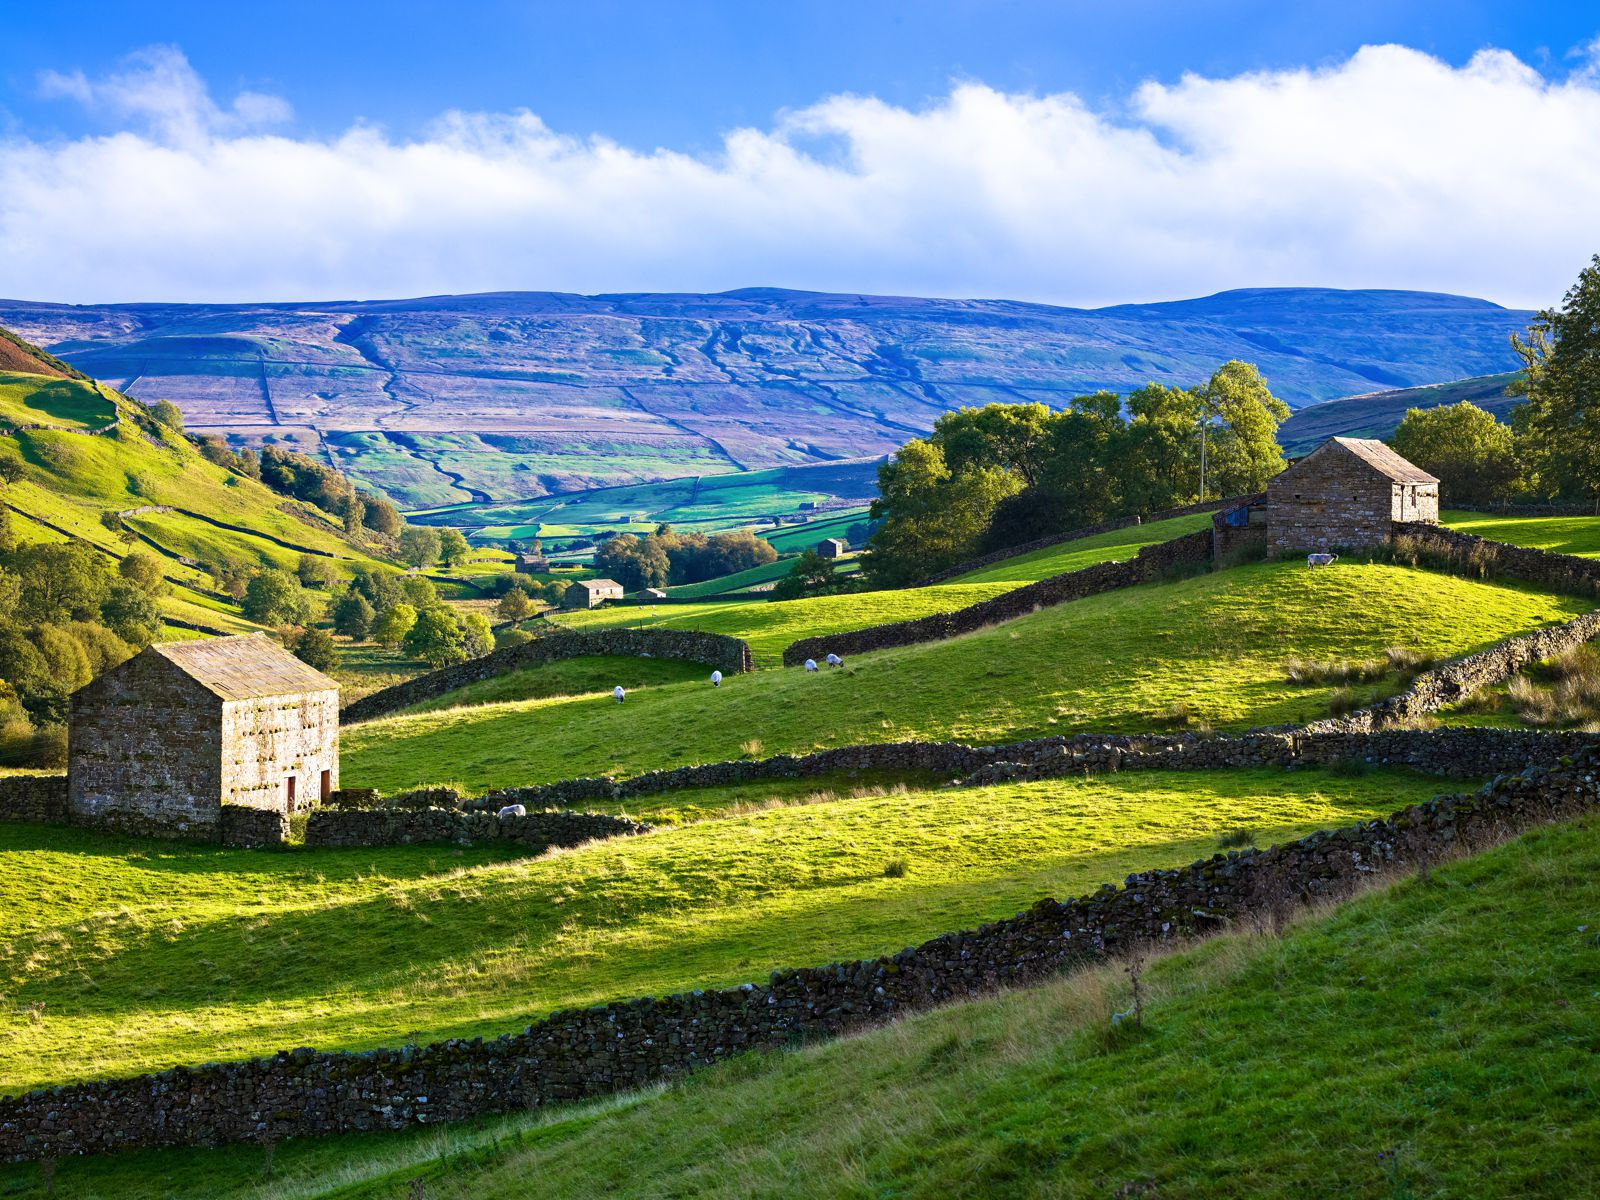 The Rolling Hills Of Yorkshire... 11 Photos That Will Make You Want To Visit Yorkshire! (6)